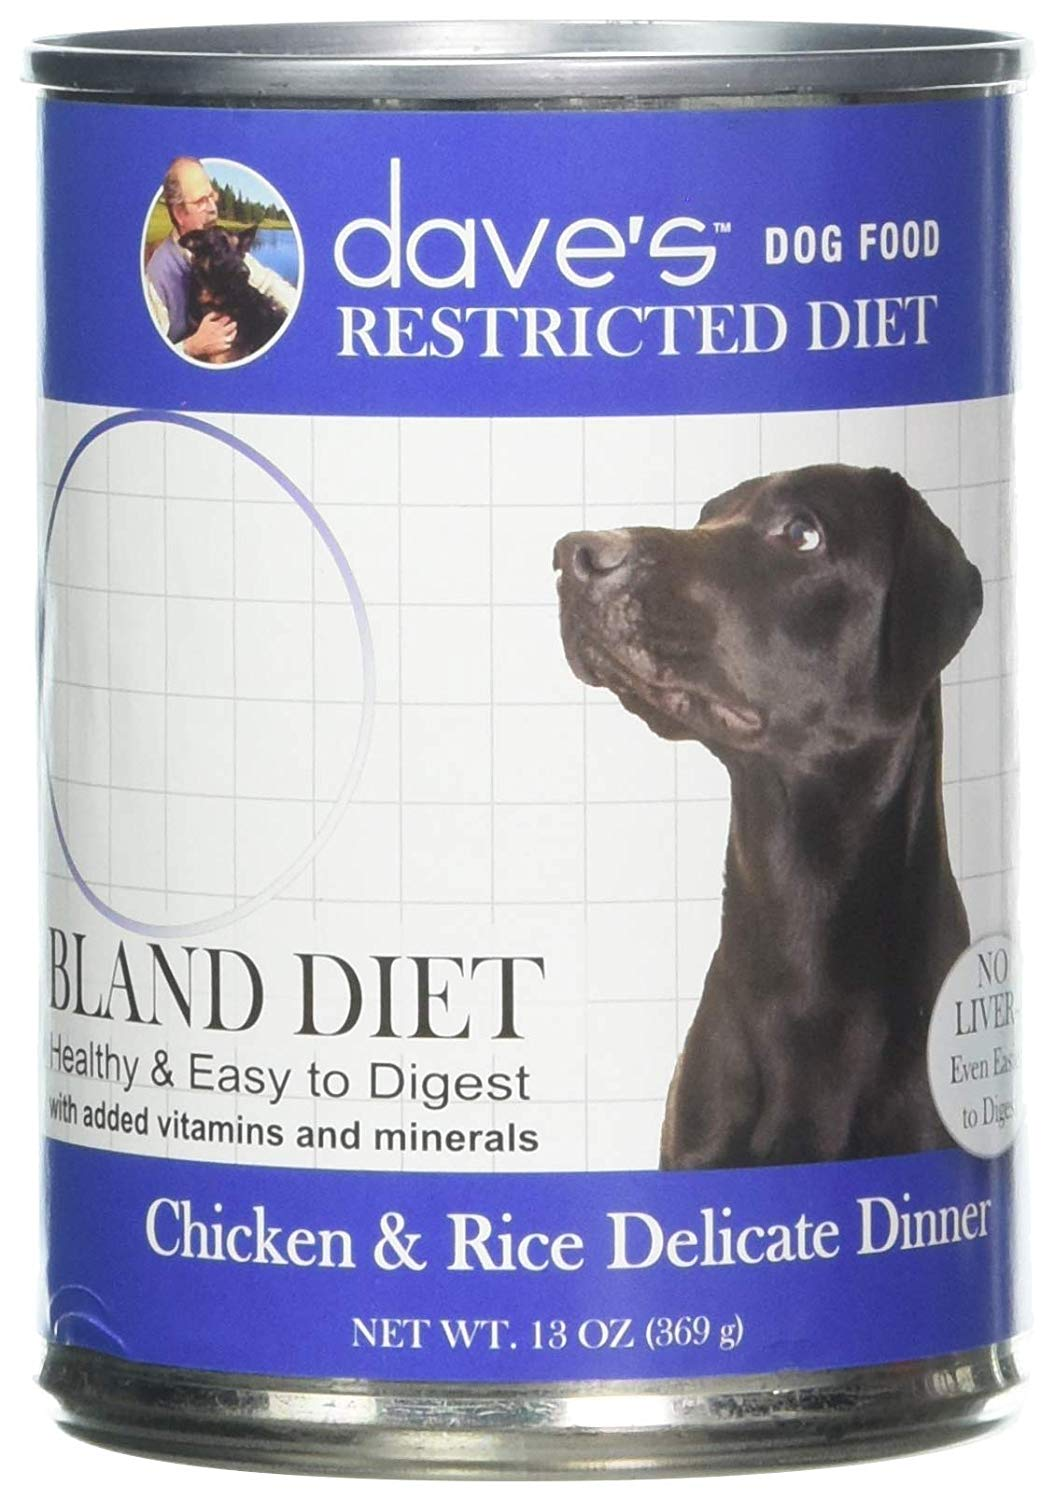 Dave's Pet Food Chicken and Rice Dog Food - Restricted Bland Diet Canned Dog Food